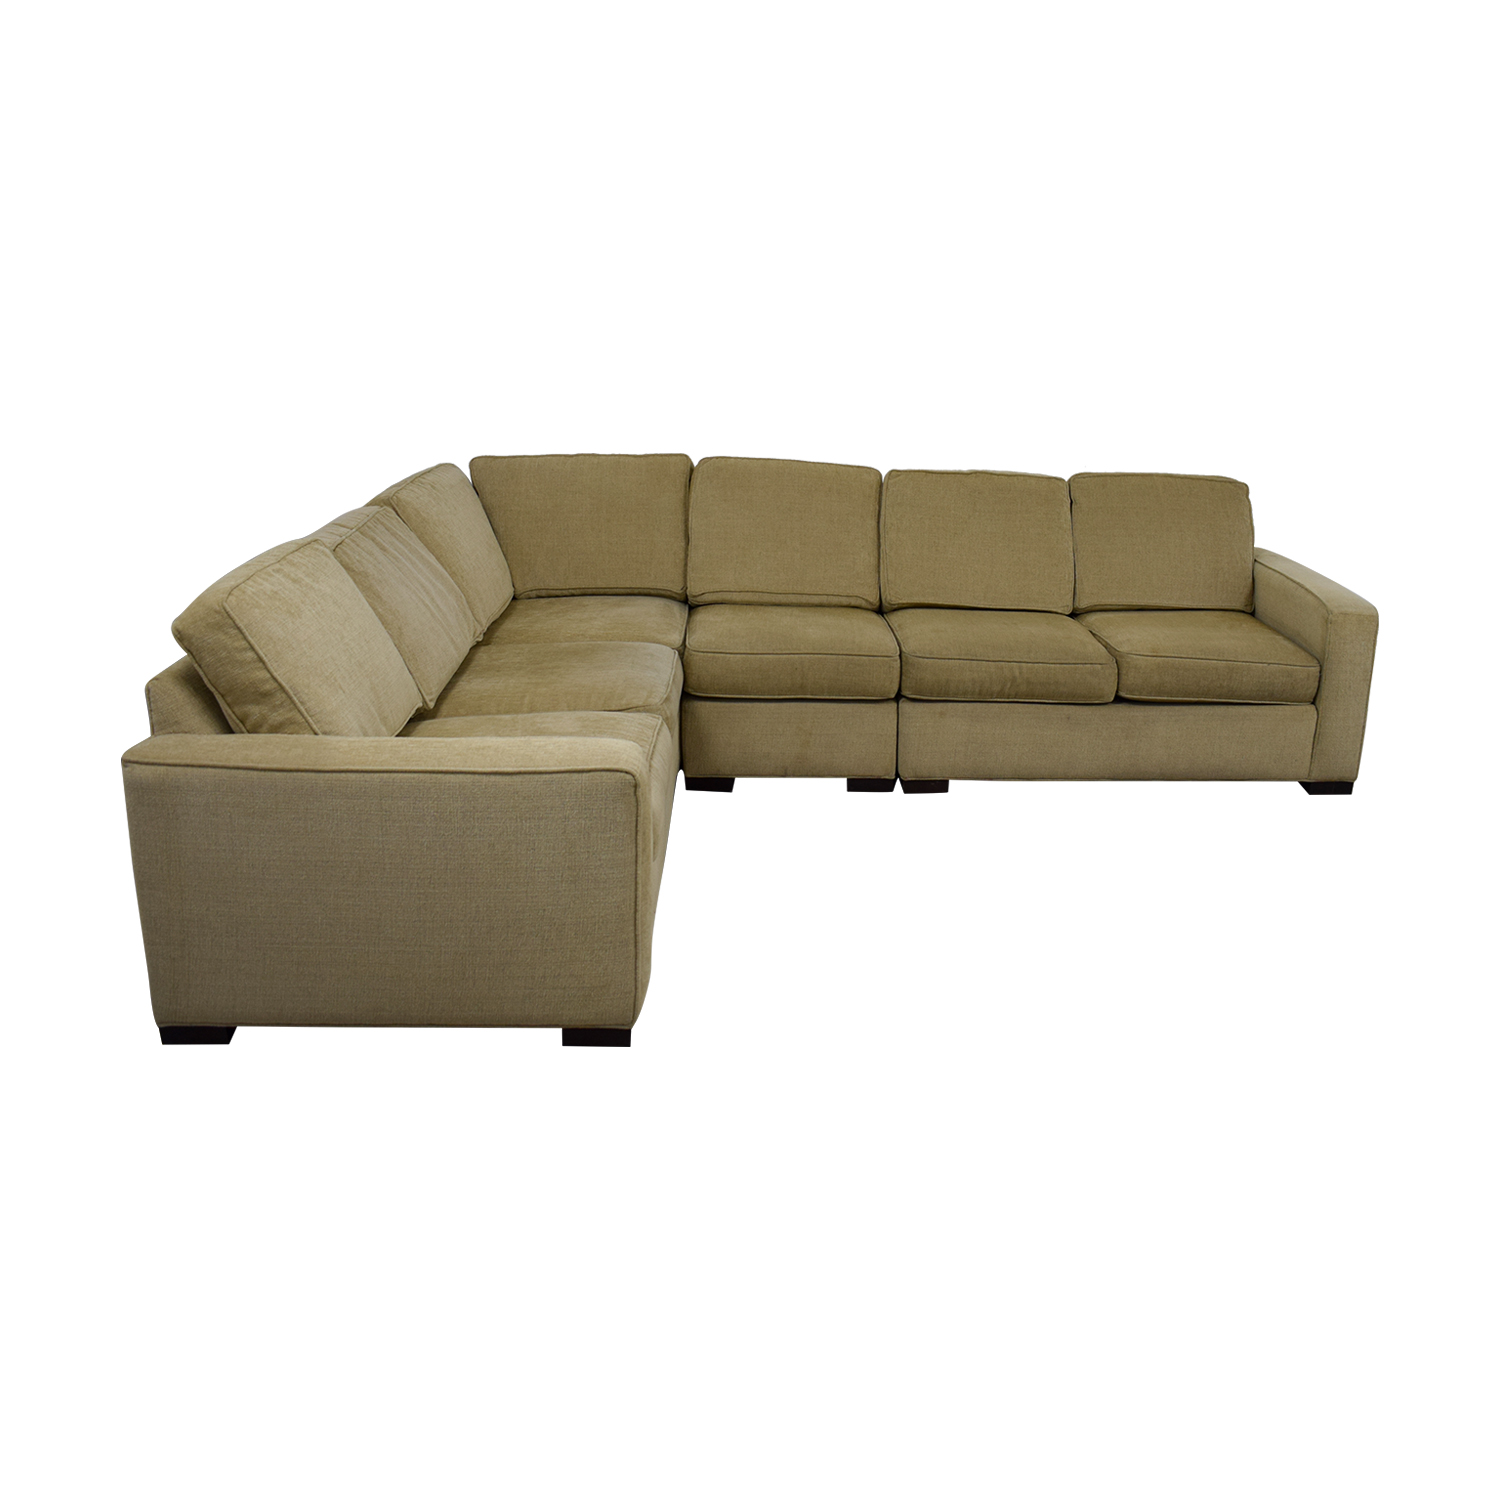 87 off ethan allen ethan allen tan sectional couch sofas